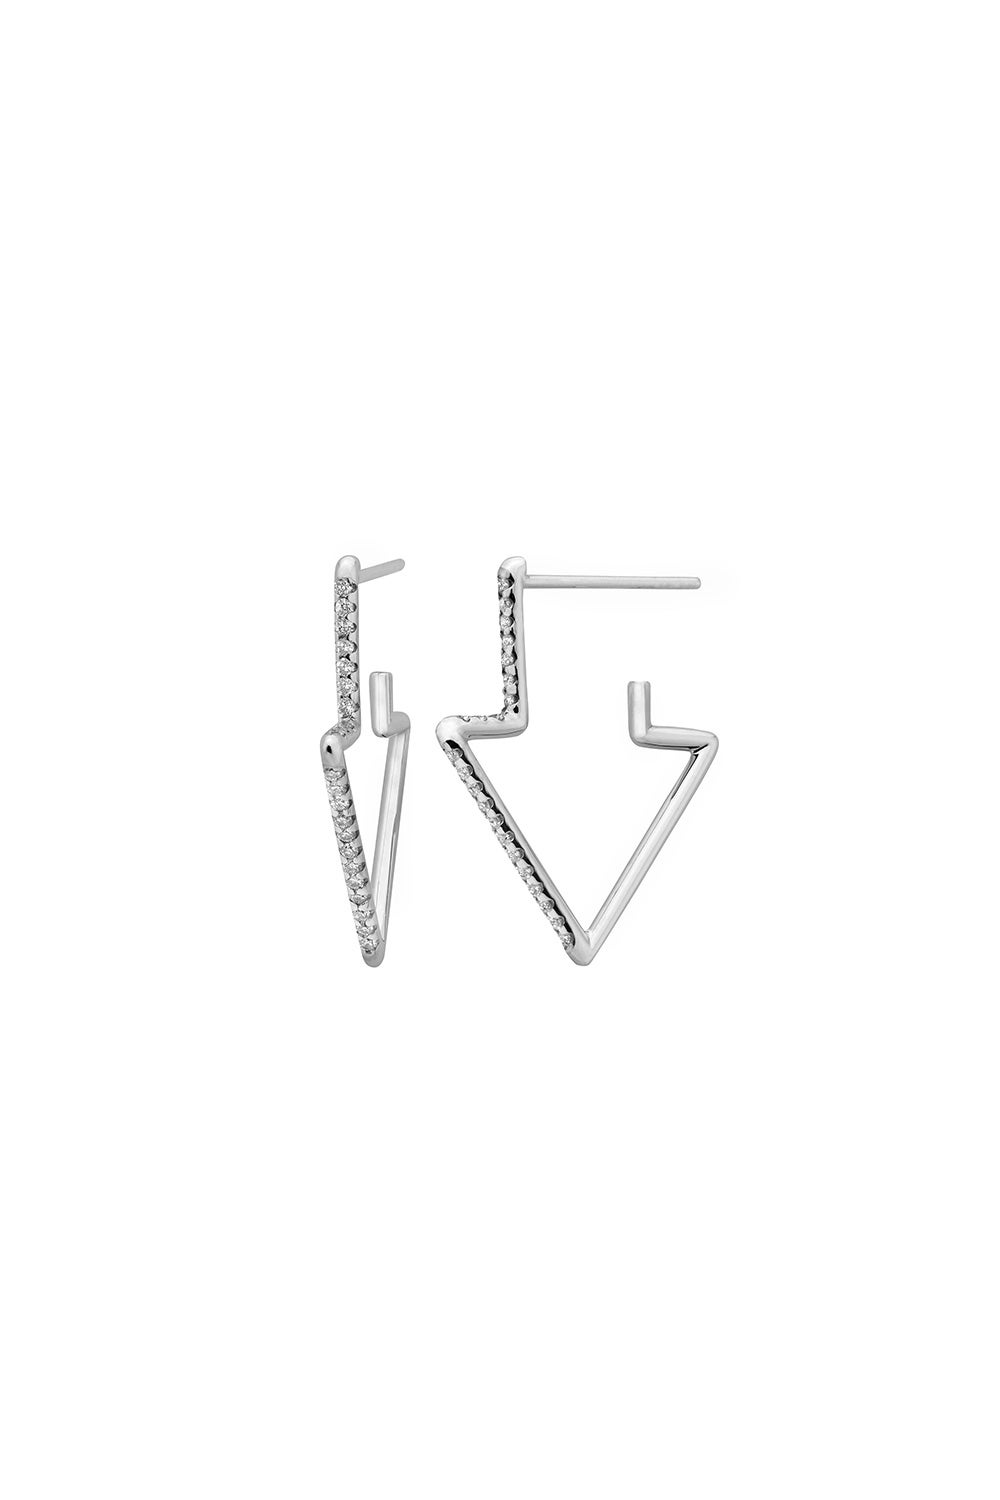 Runaway Arrow Earring, 9ct White Gold, .24ct Diamond